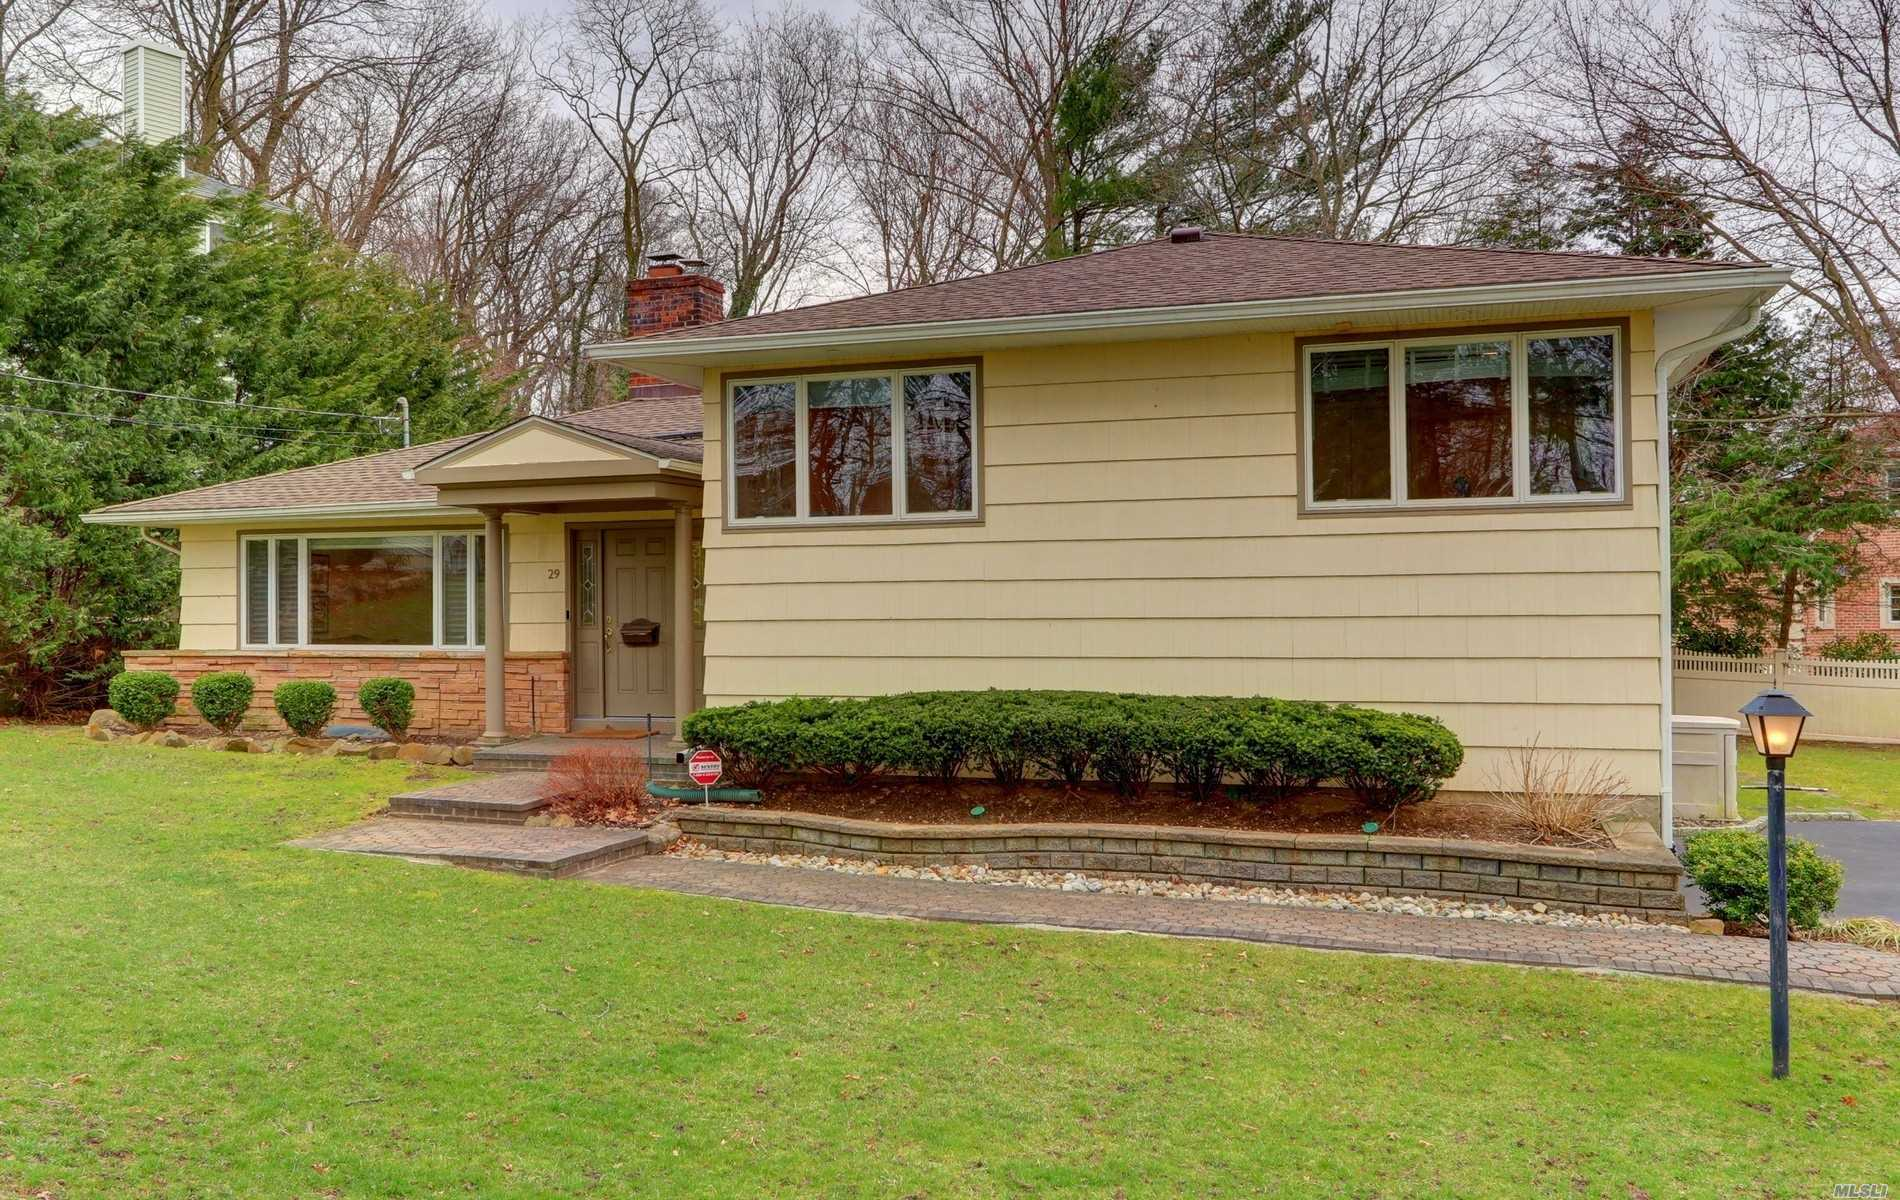 Location, Location Location!!Move Right In! Excellent Opportunity to live In The Heart Of Flower Hill On 1/3 Acre Property.Updated 4 BR Split Offers Spacious LR W/Fpl, Din. Rm W/Access To Beautiful Deck, Oversized Den W/Radiant Heated Flrs.Granite Kitchen, Master Br W/Ample Closets, Fabulous Finished Basement. Large Backyard w/Room For Pool. Wired For Generator, Port Washington Train Sticker.Close To All.Roslyn Schools, Harbor Hill Elementary.